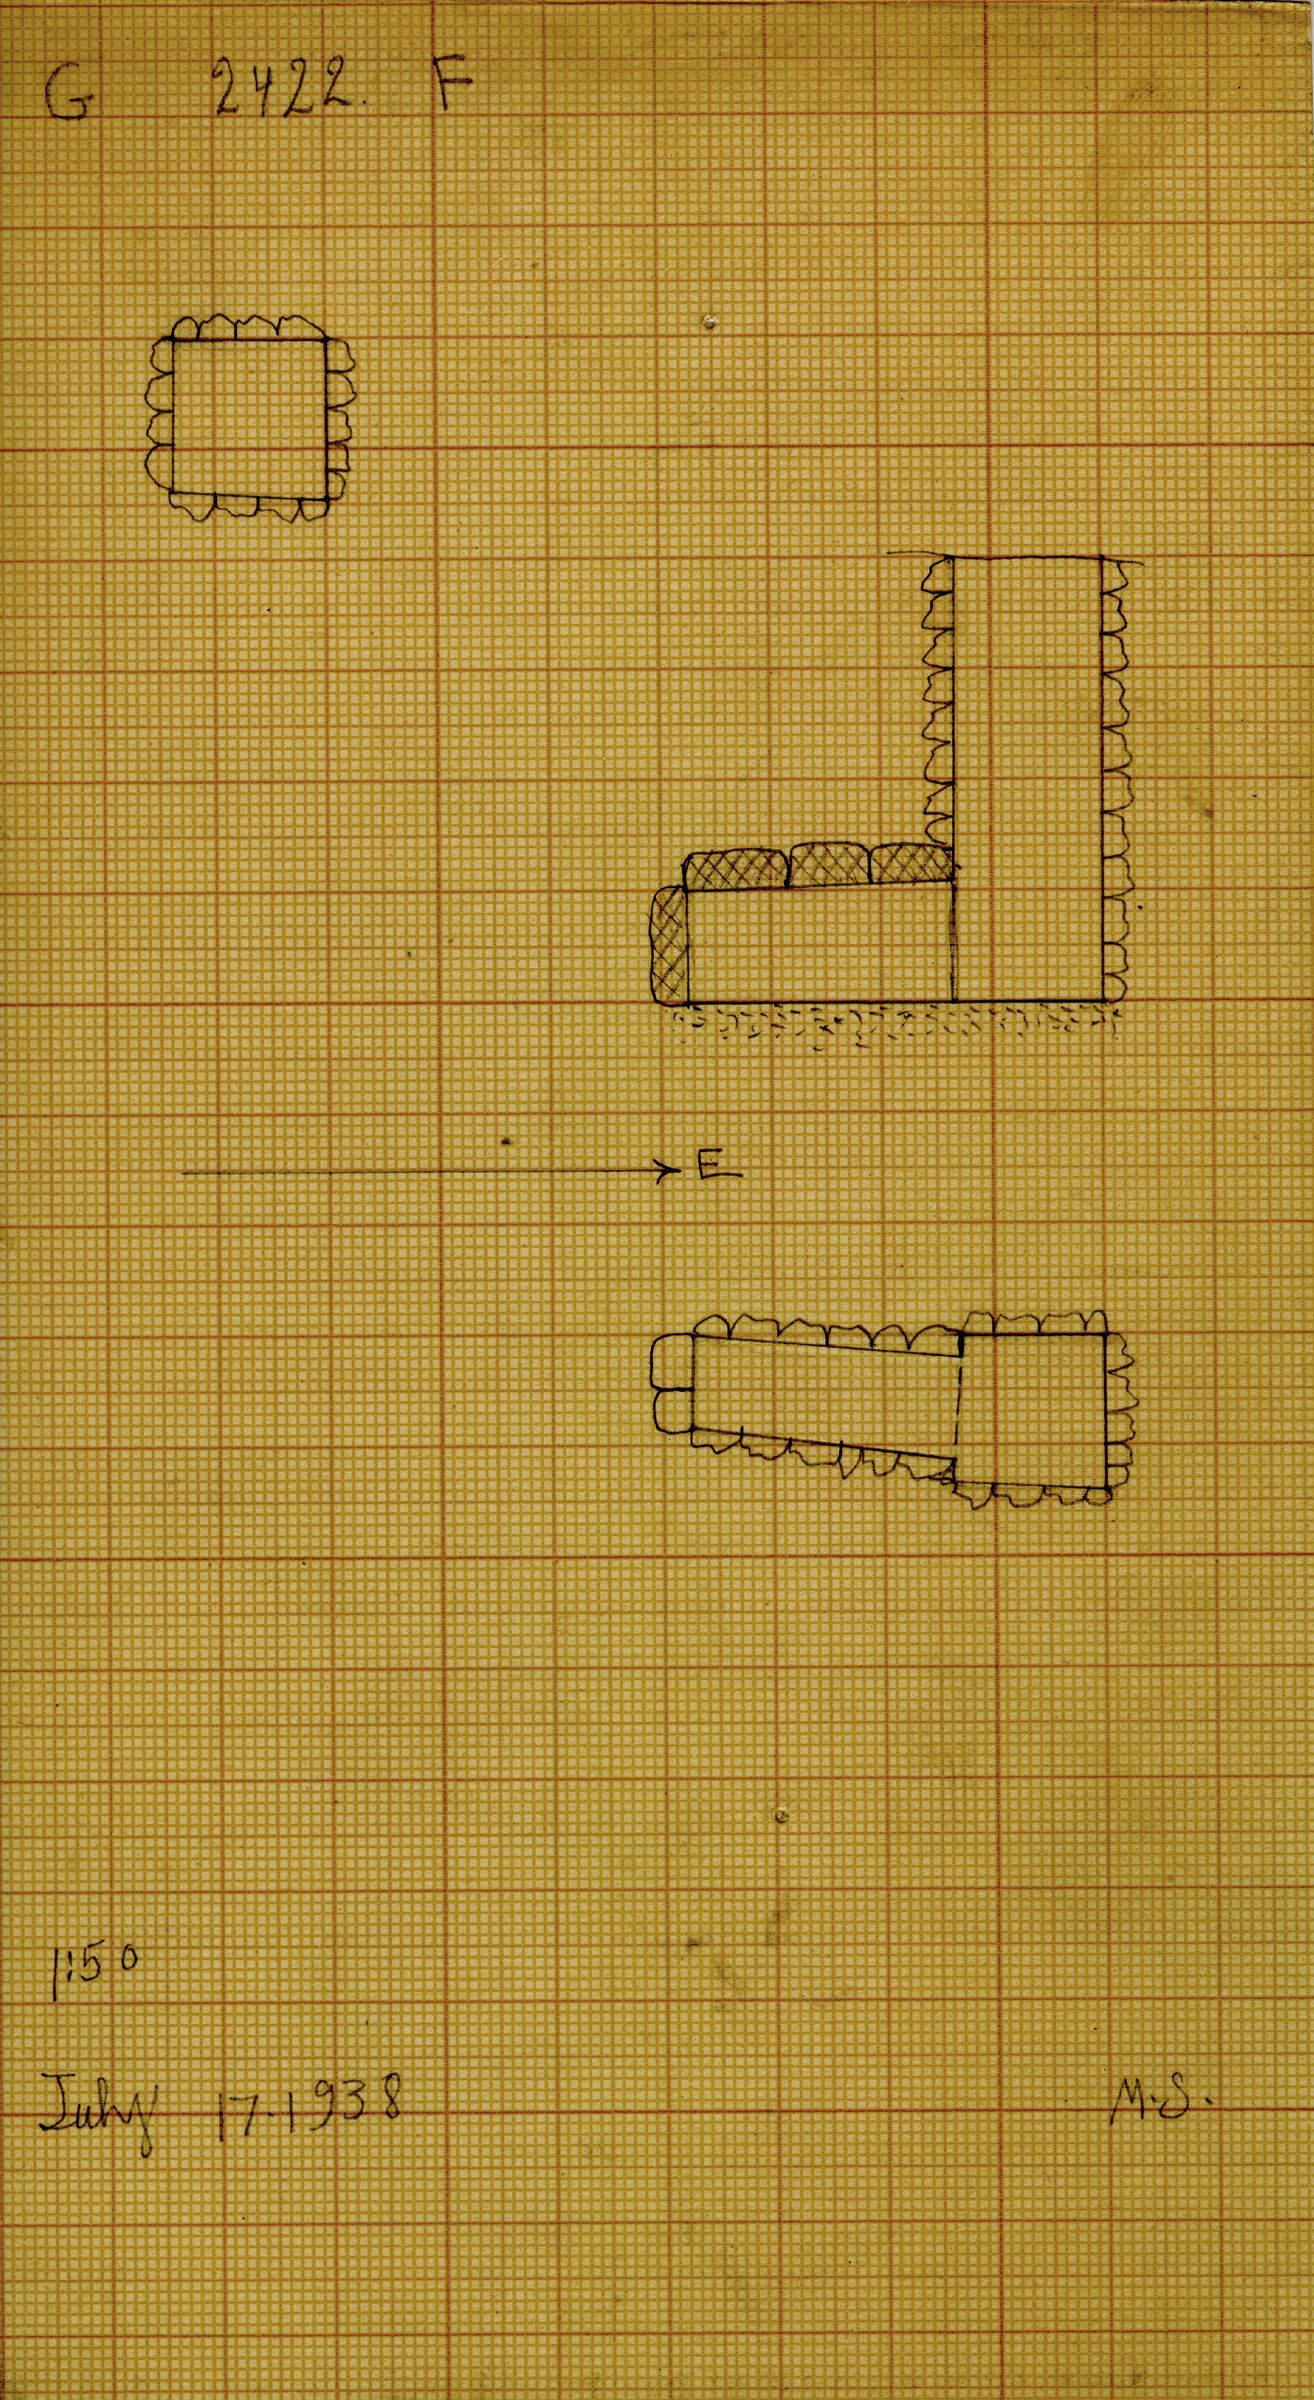 Maps and plans: G 2422, Shaft F